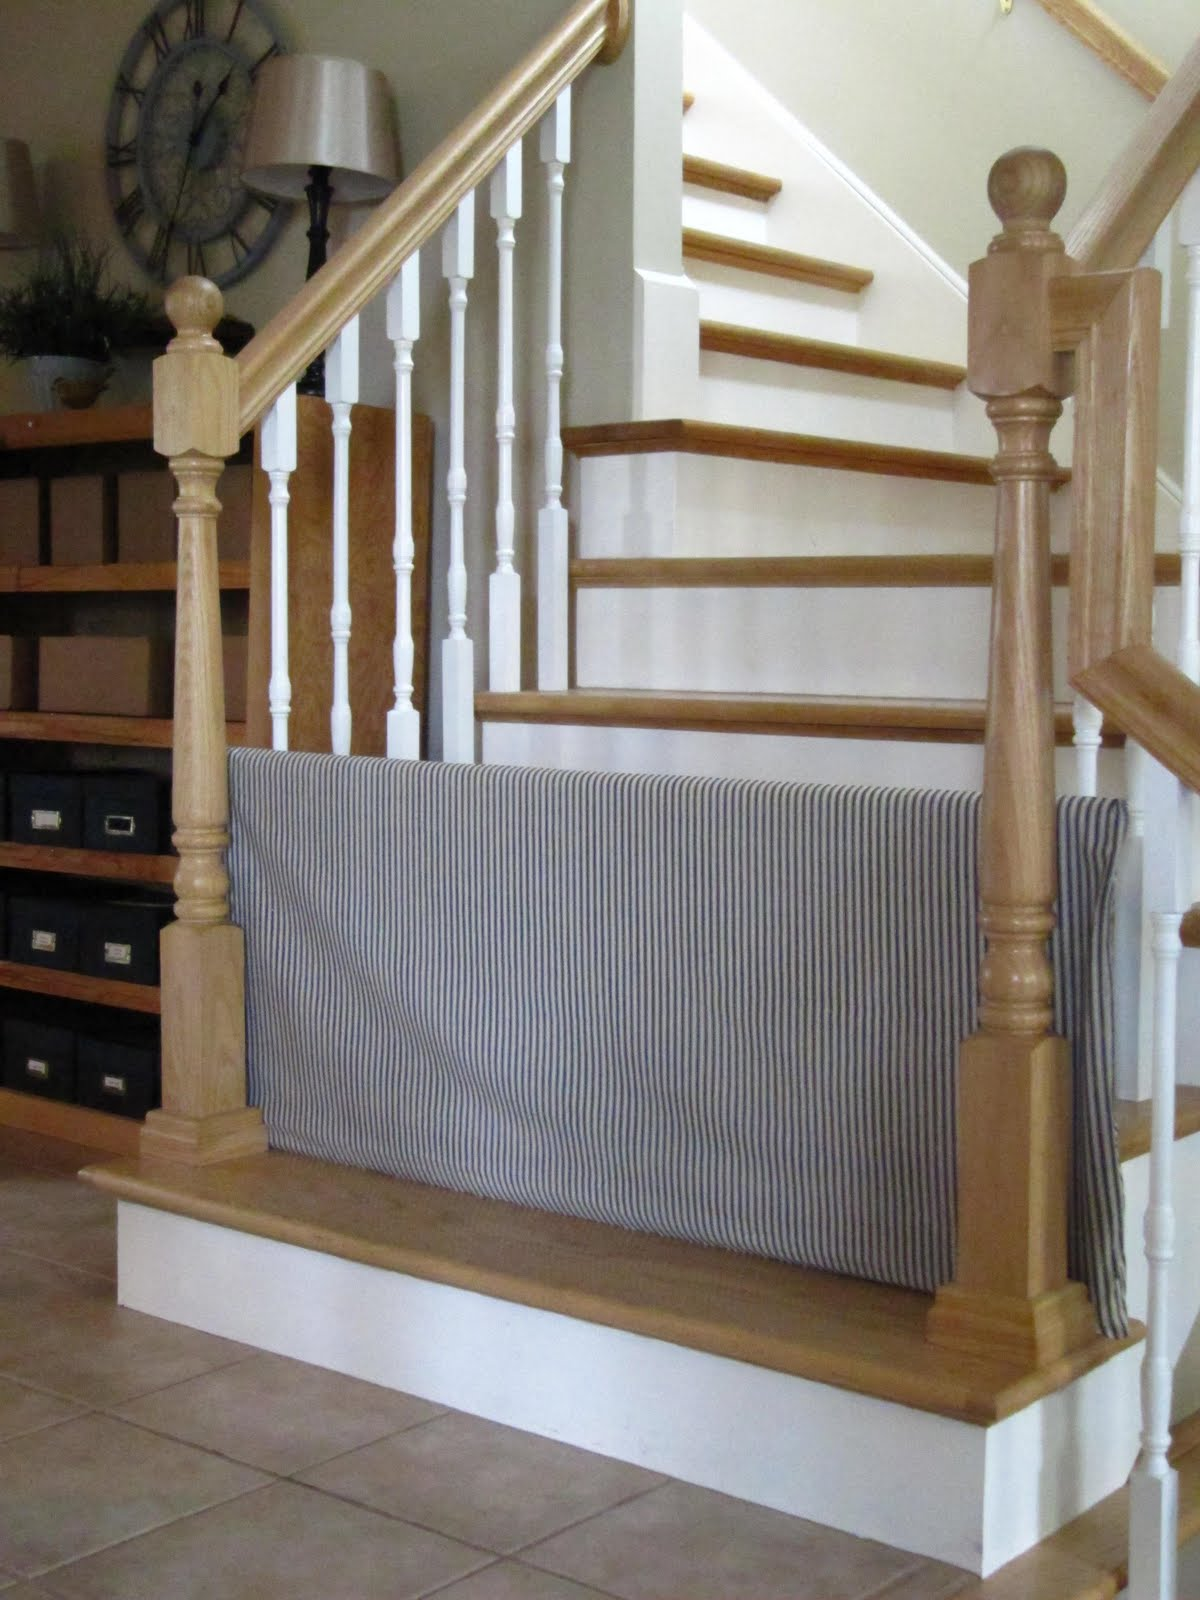 11 DIY Baby Gate Ideas Step by Step Instruction and Plan